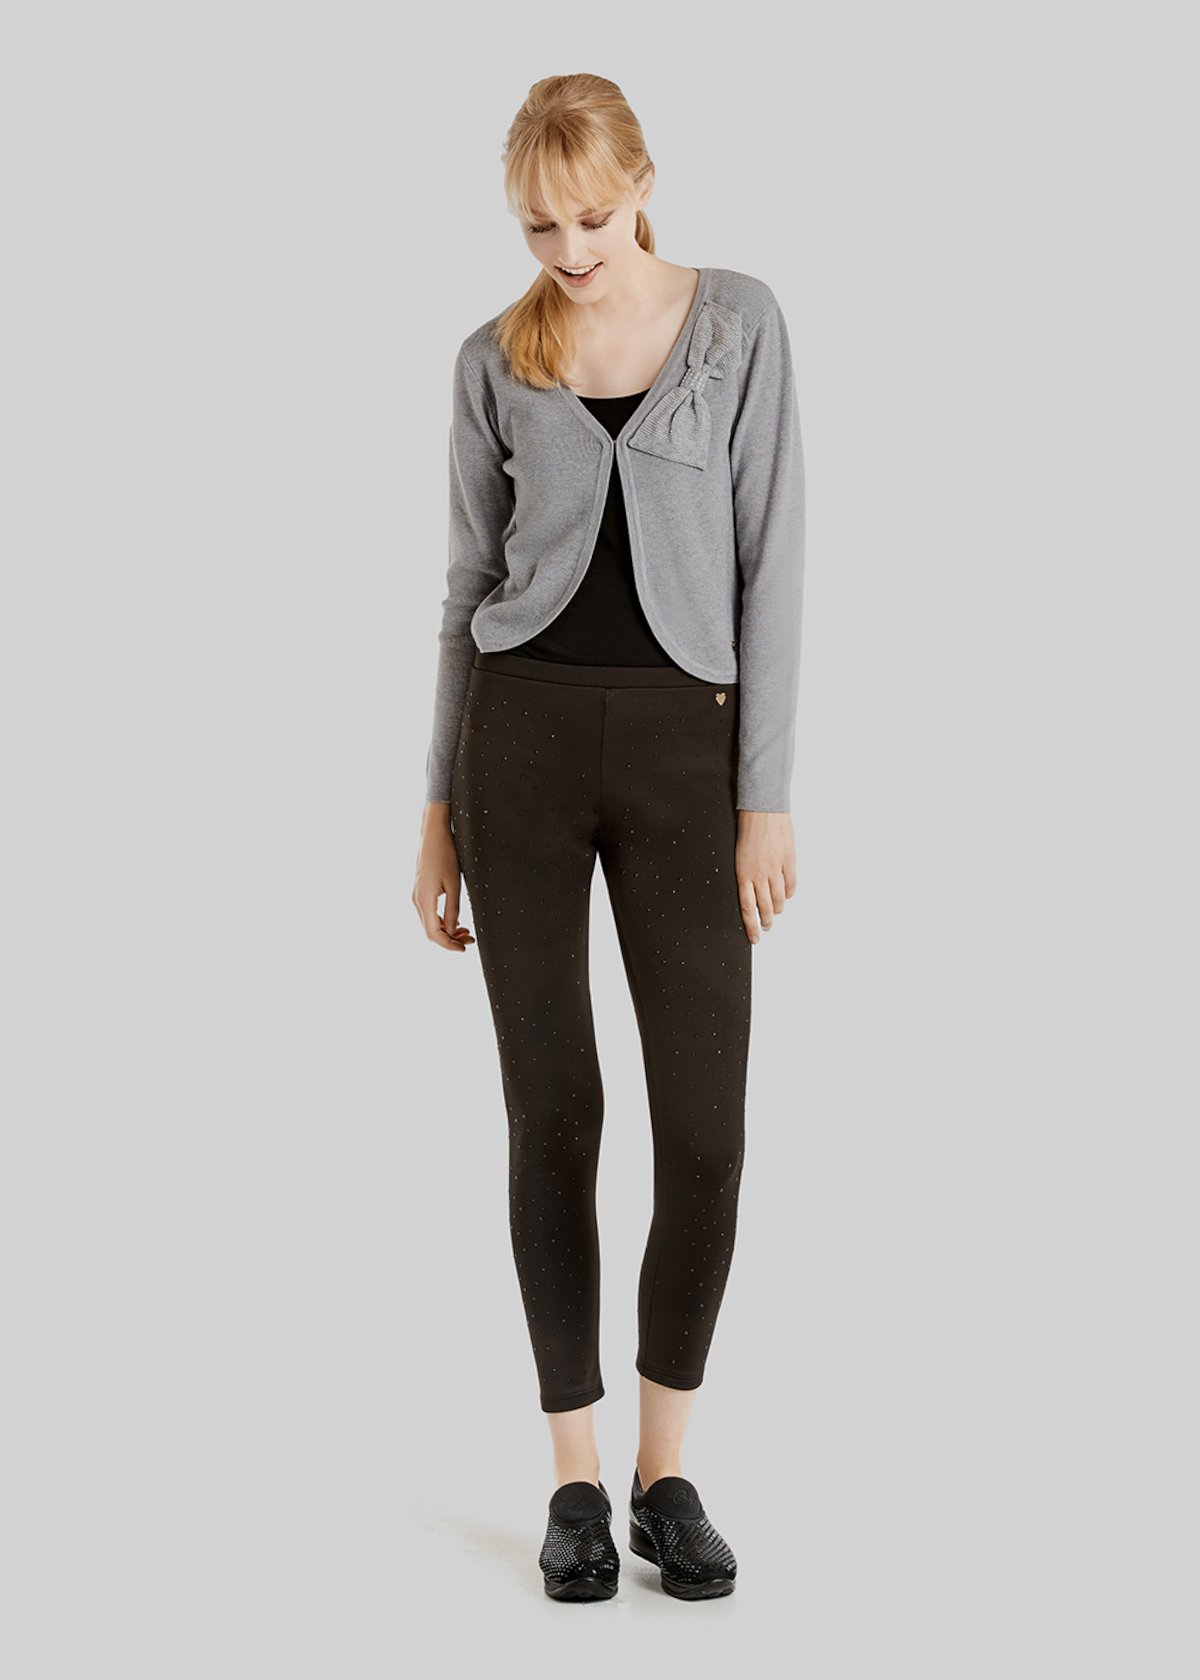 Cesar shrug with bow detail - Grey Melange